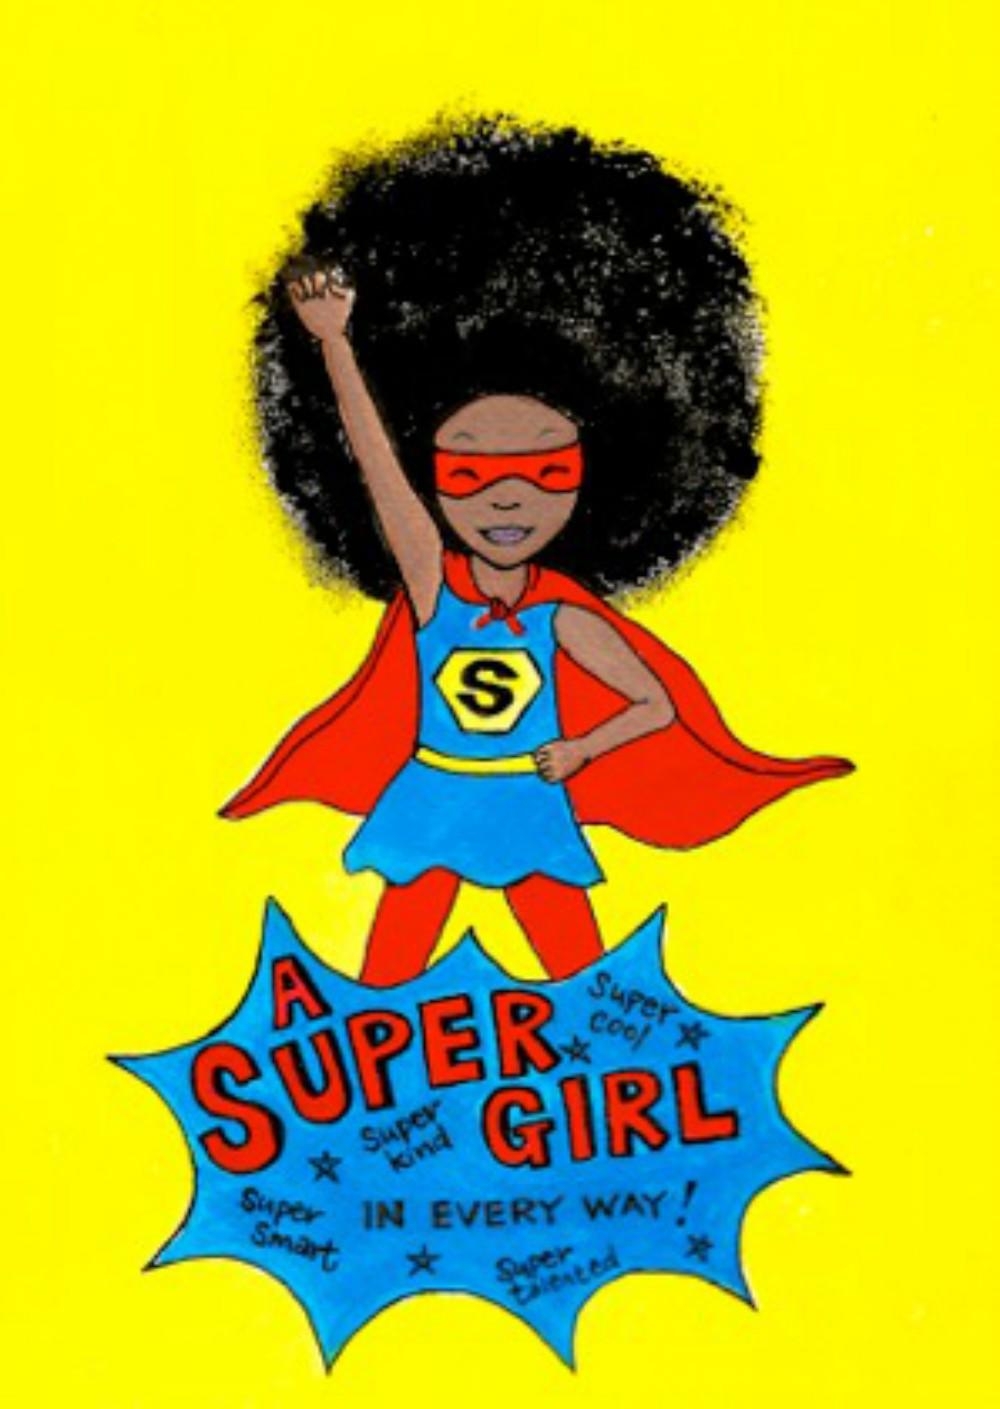 black super girl with afro hair